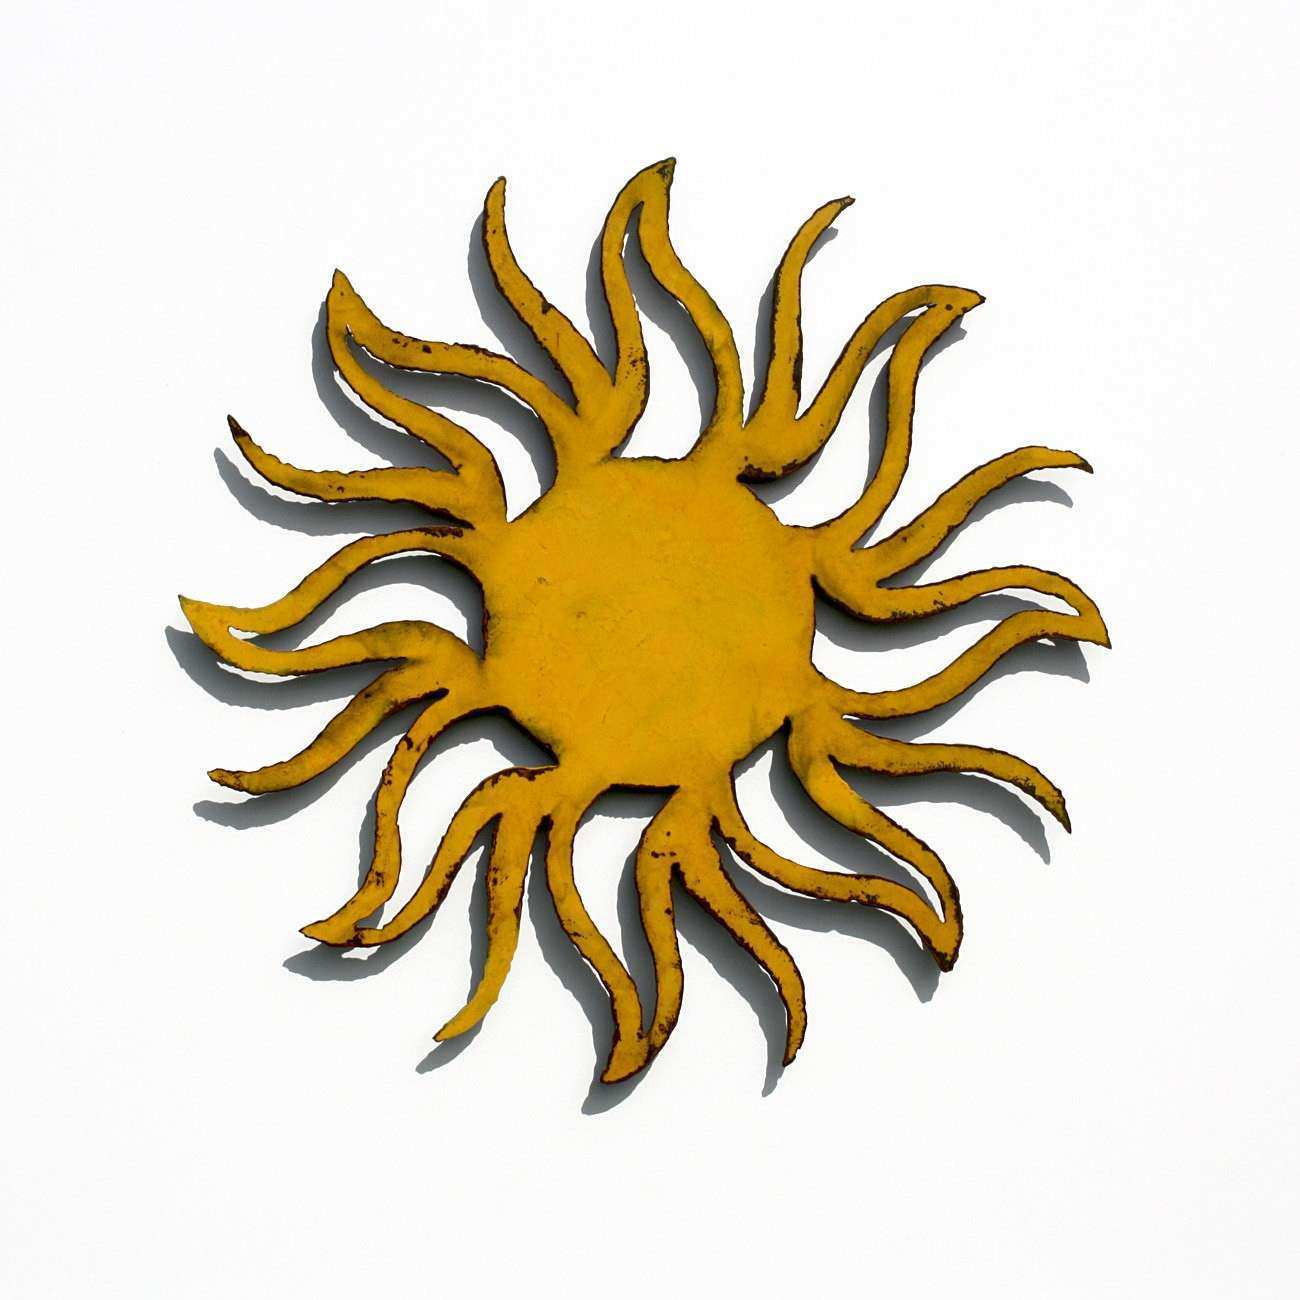 SUN Metal Wall Art 16 Garden Art indoor outdoor